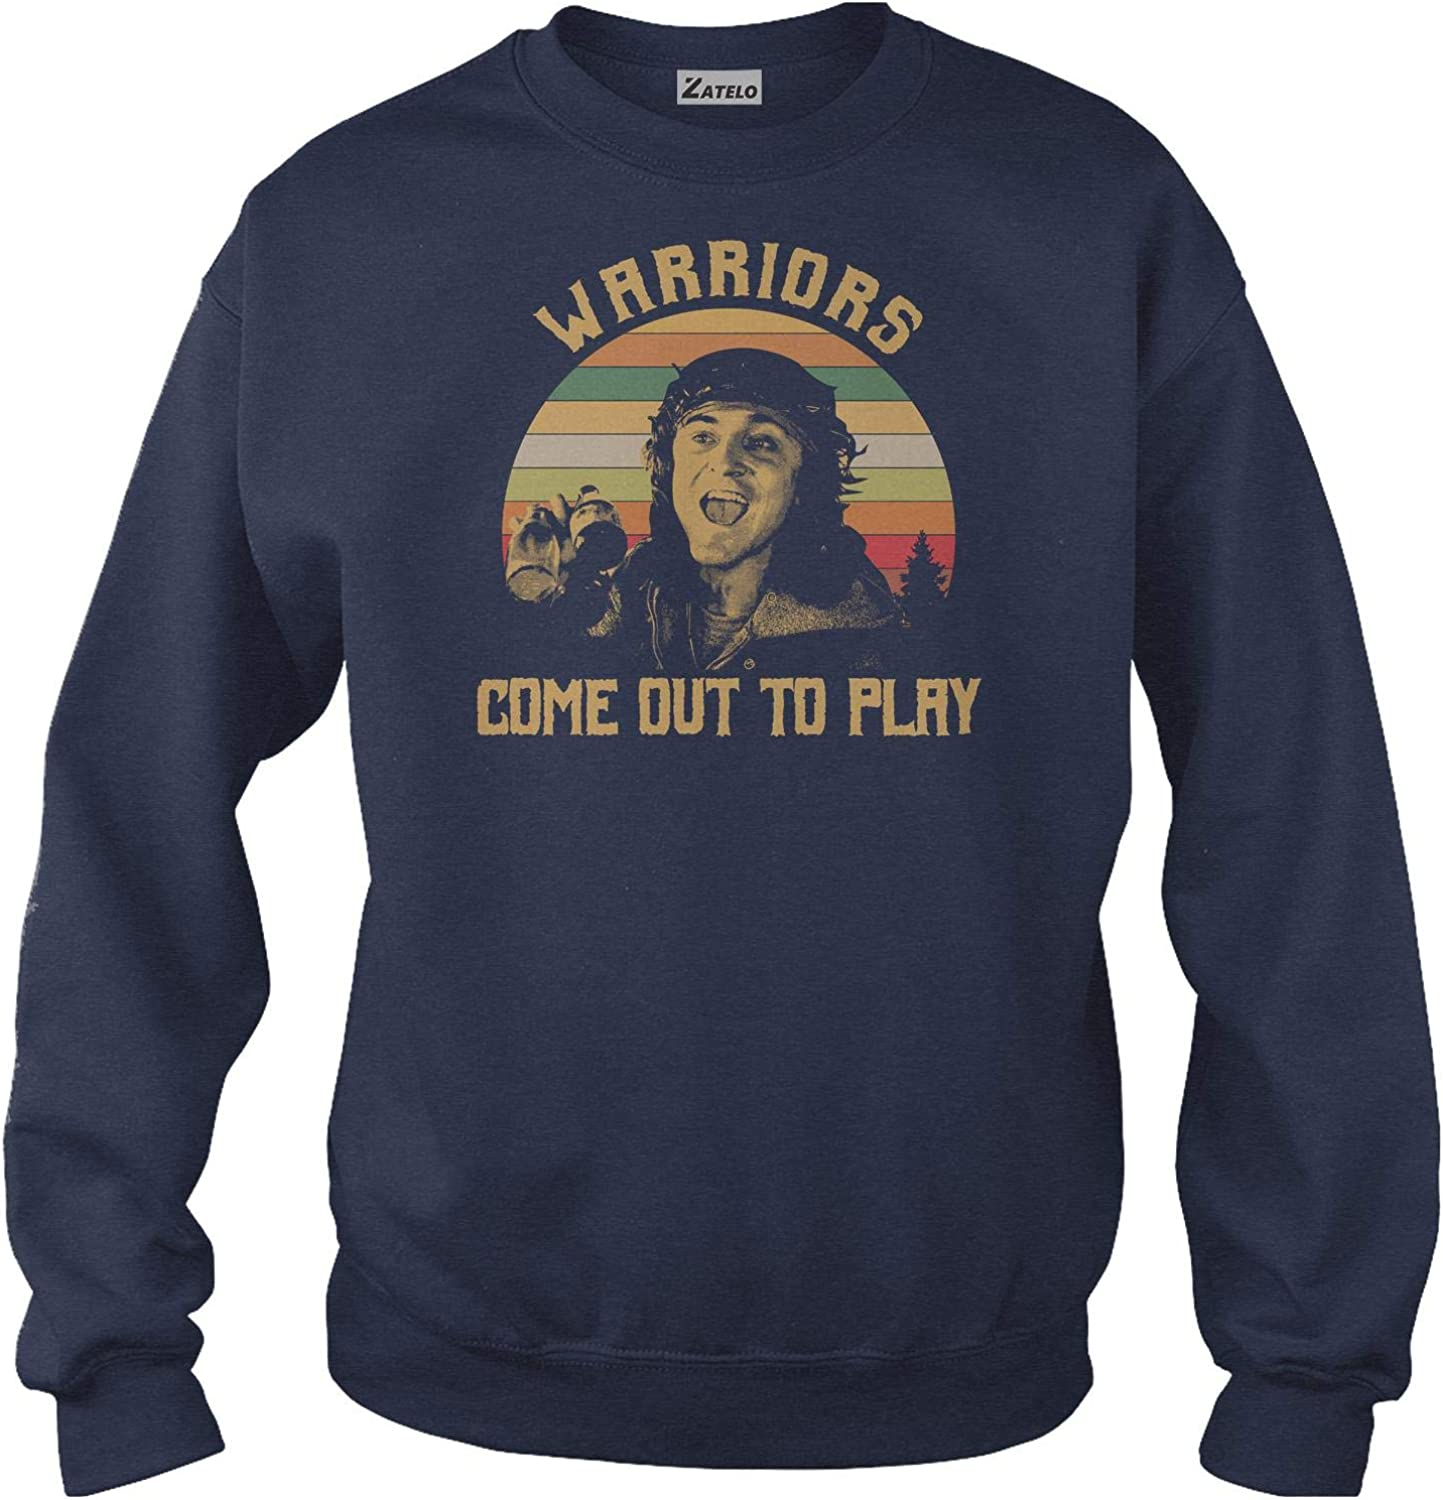 Warriors Come Out to Play - Retro T-Shirt Raleigh A surprise price is realized Mall Vintage